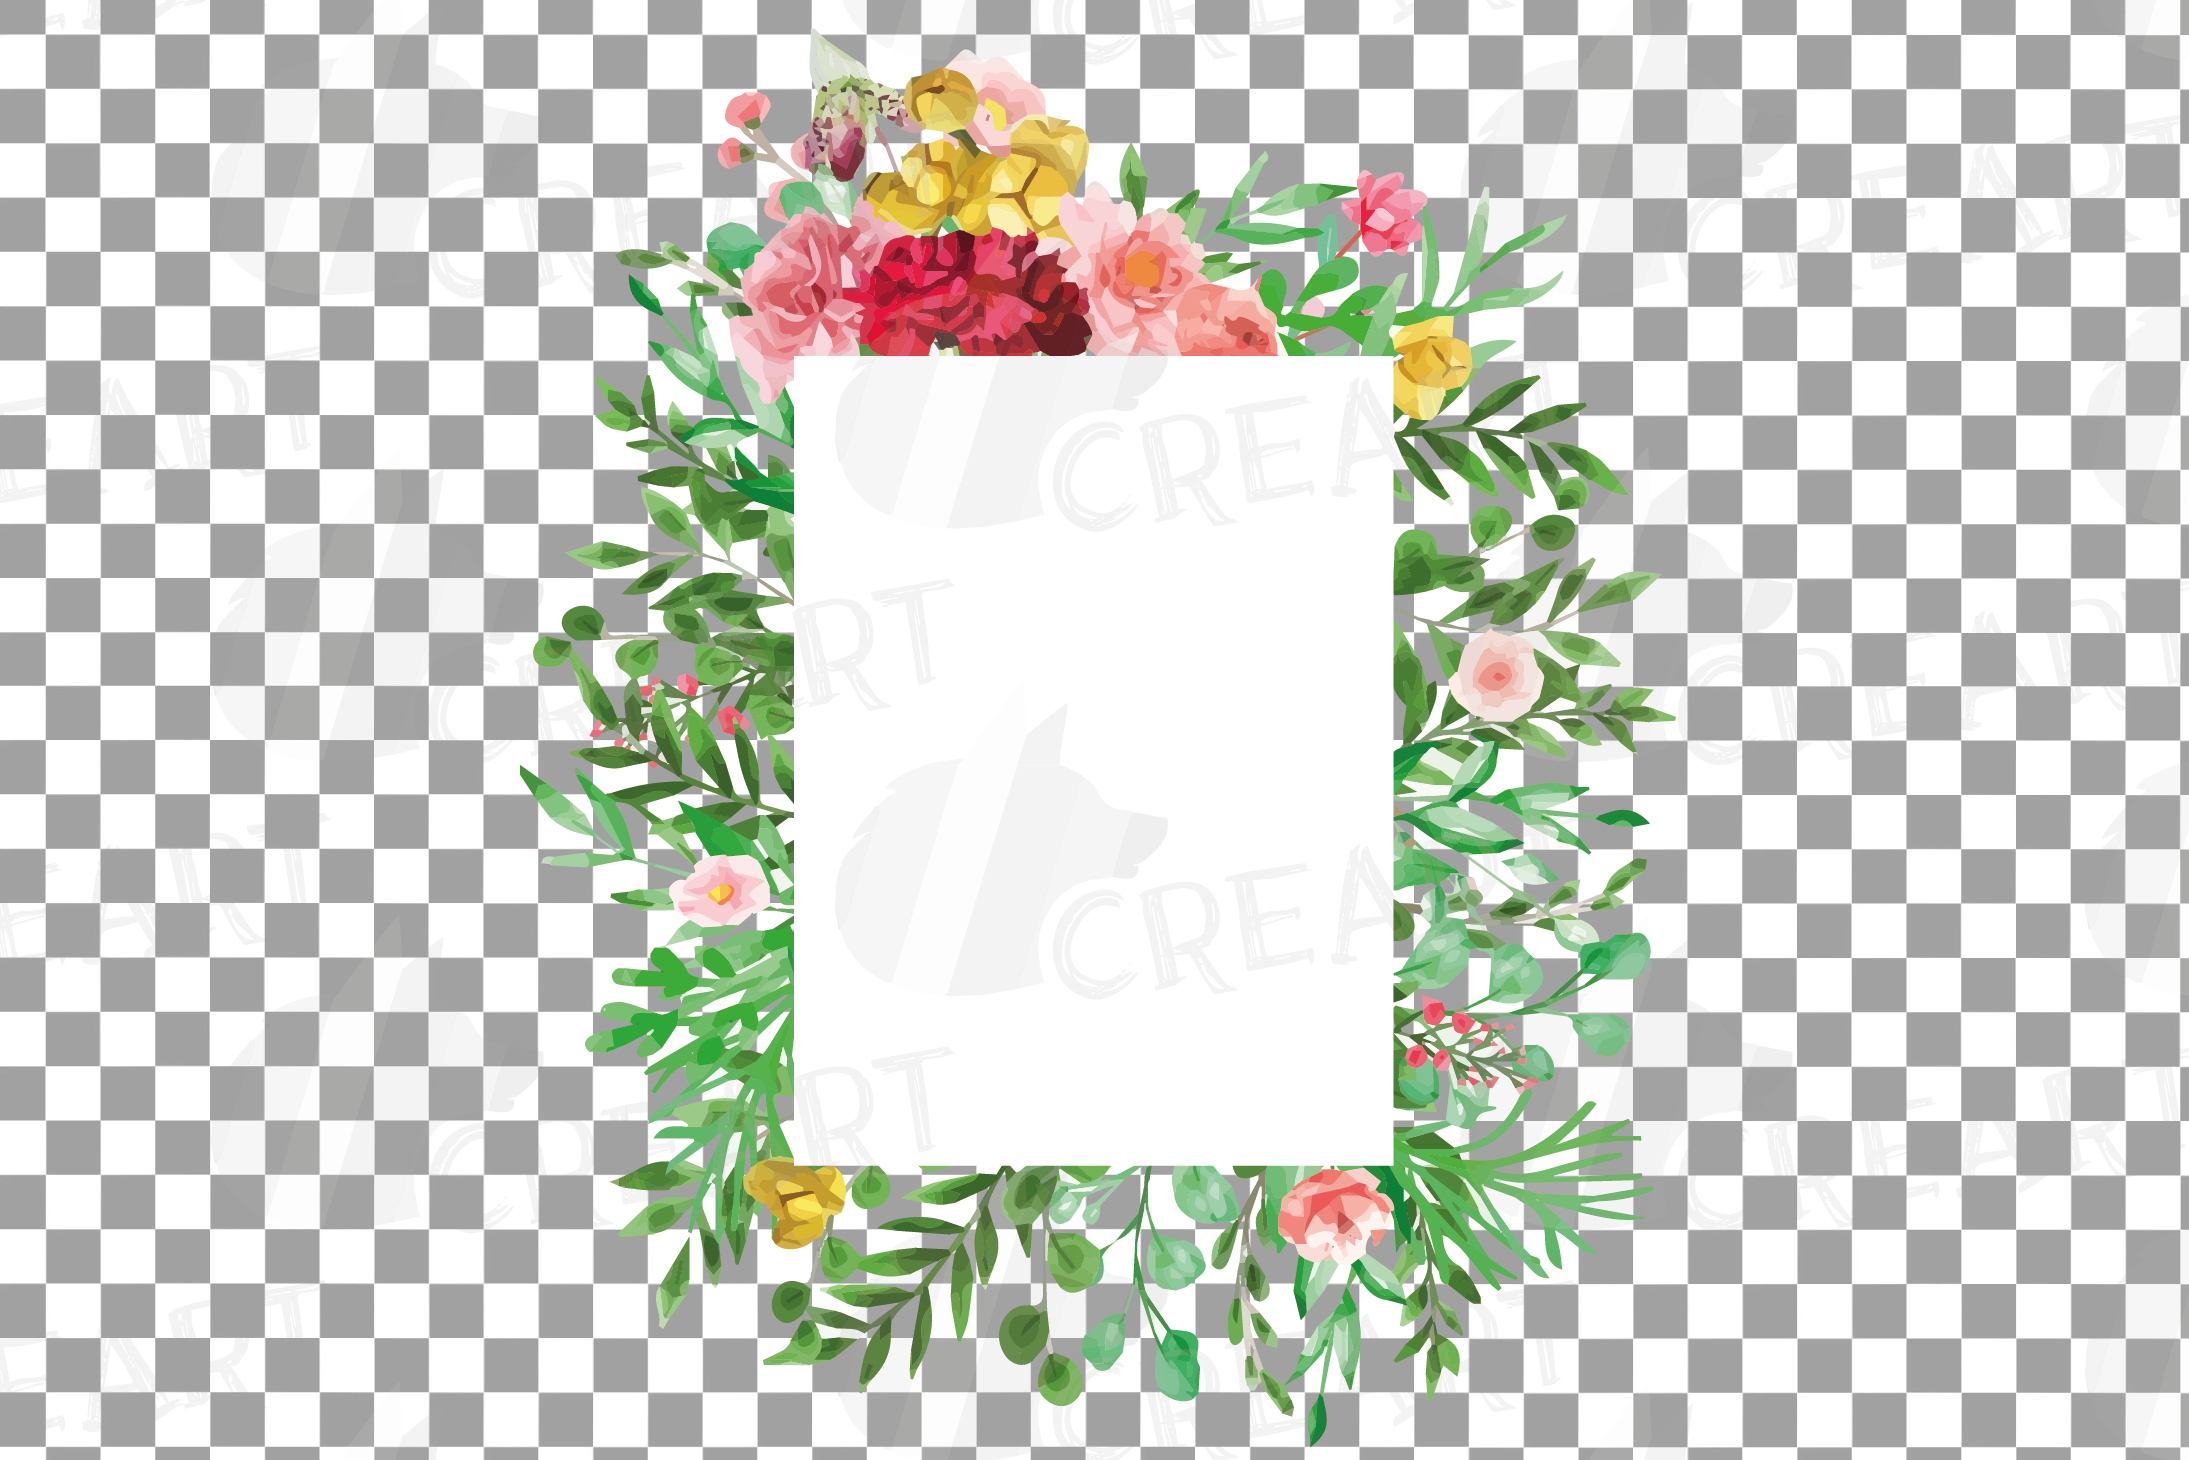 Watercolor floral floral frames and borders clip art pack example image 19